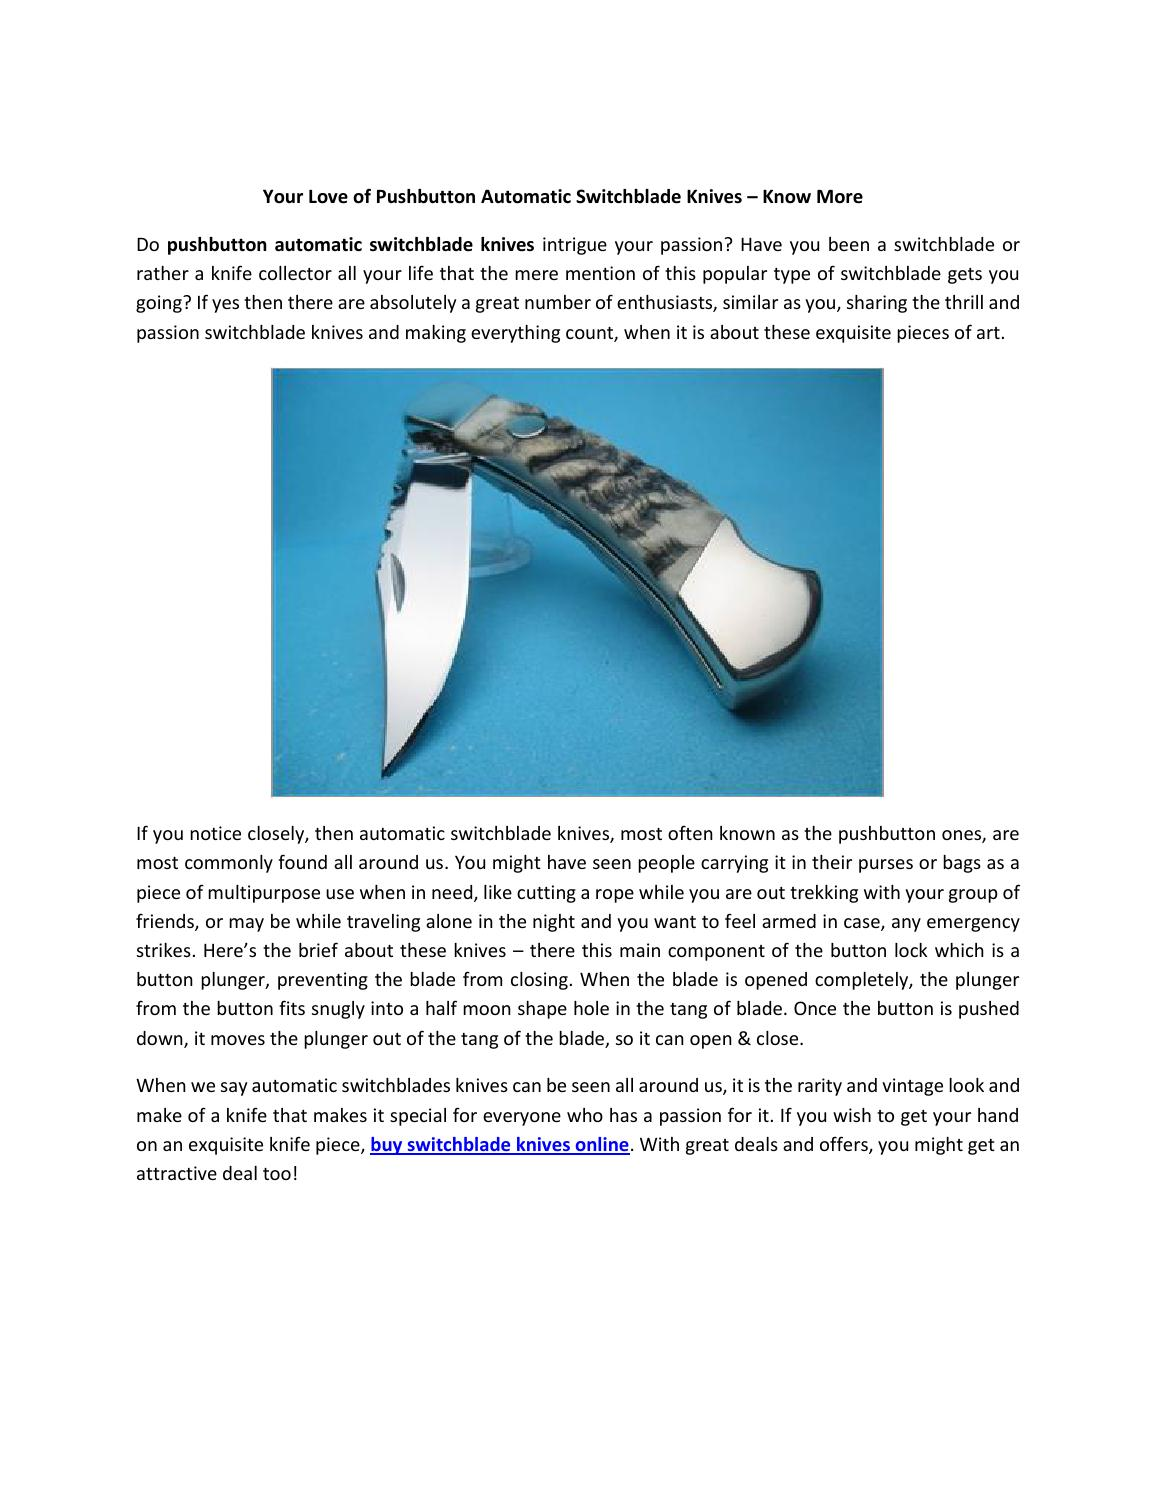 Your love of pushbutton automatic switchblade knives – know more by